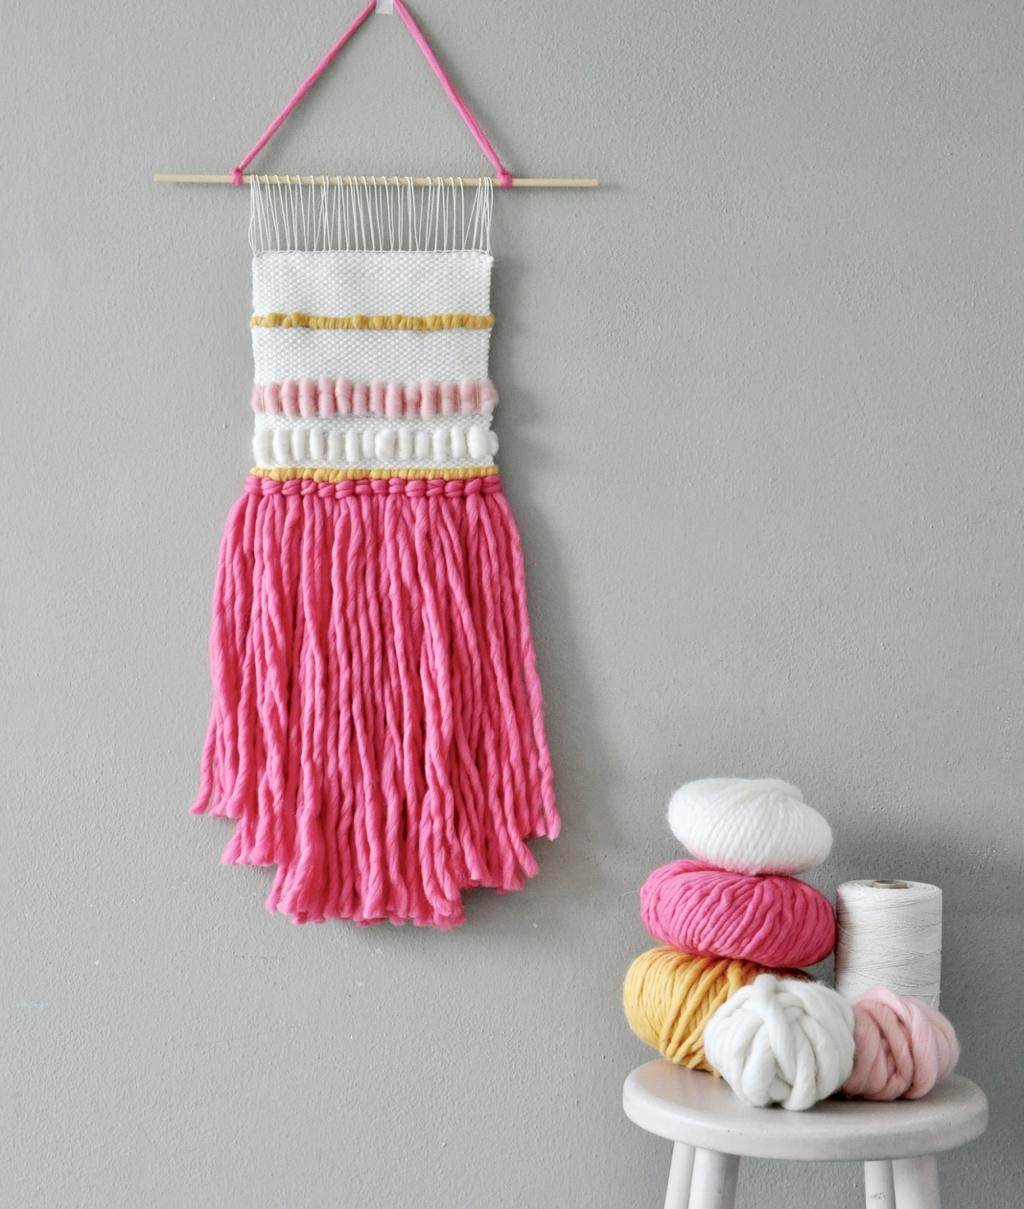 Weaving KitS - Weaving KitS - ICE CREAM WALL HANGING - 1